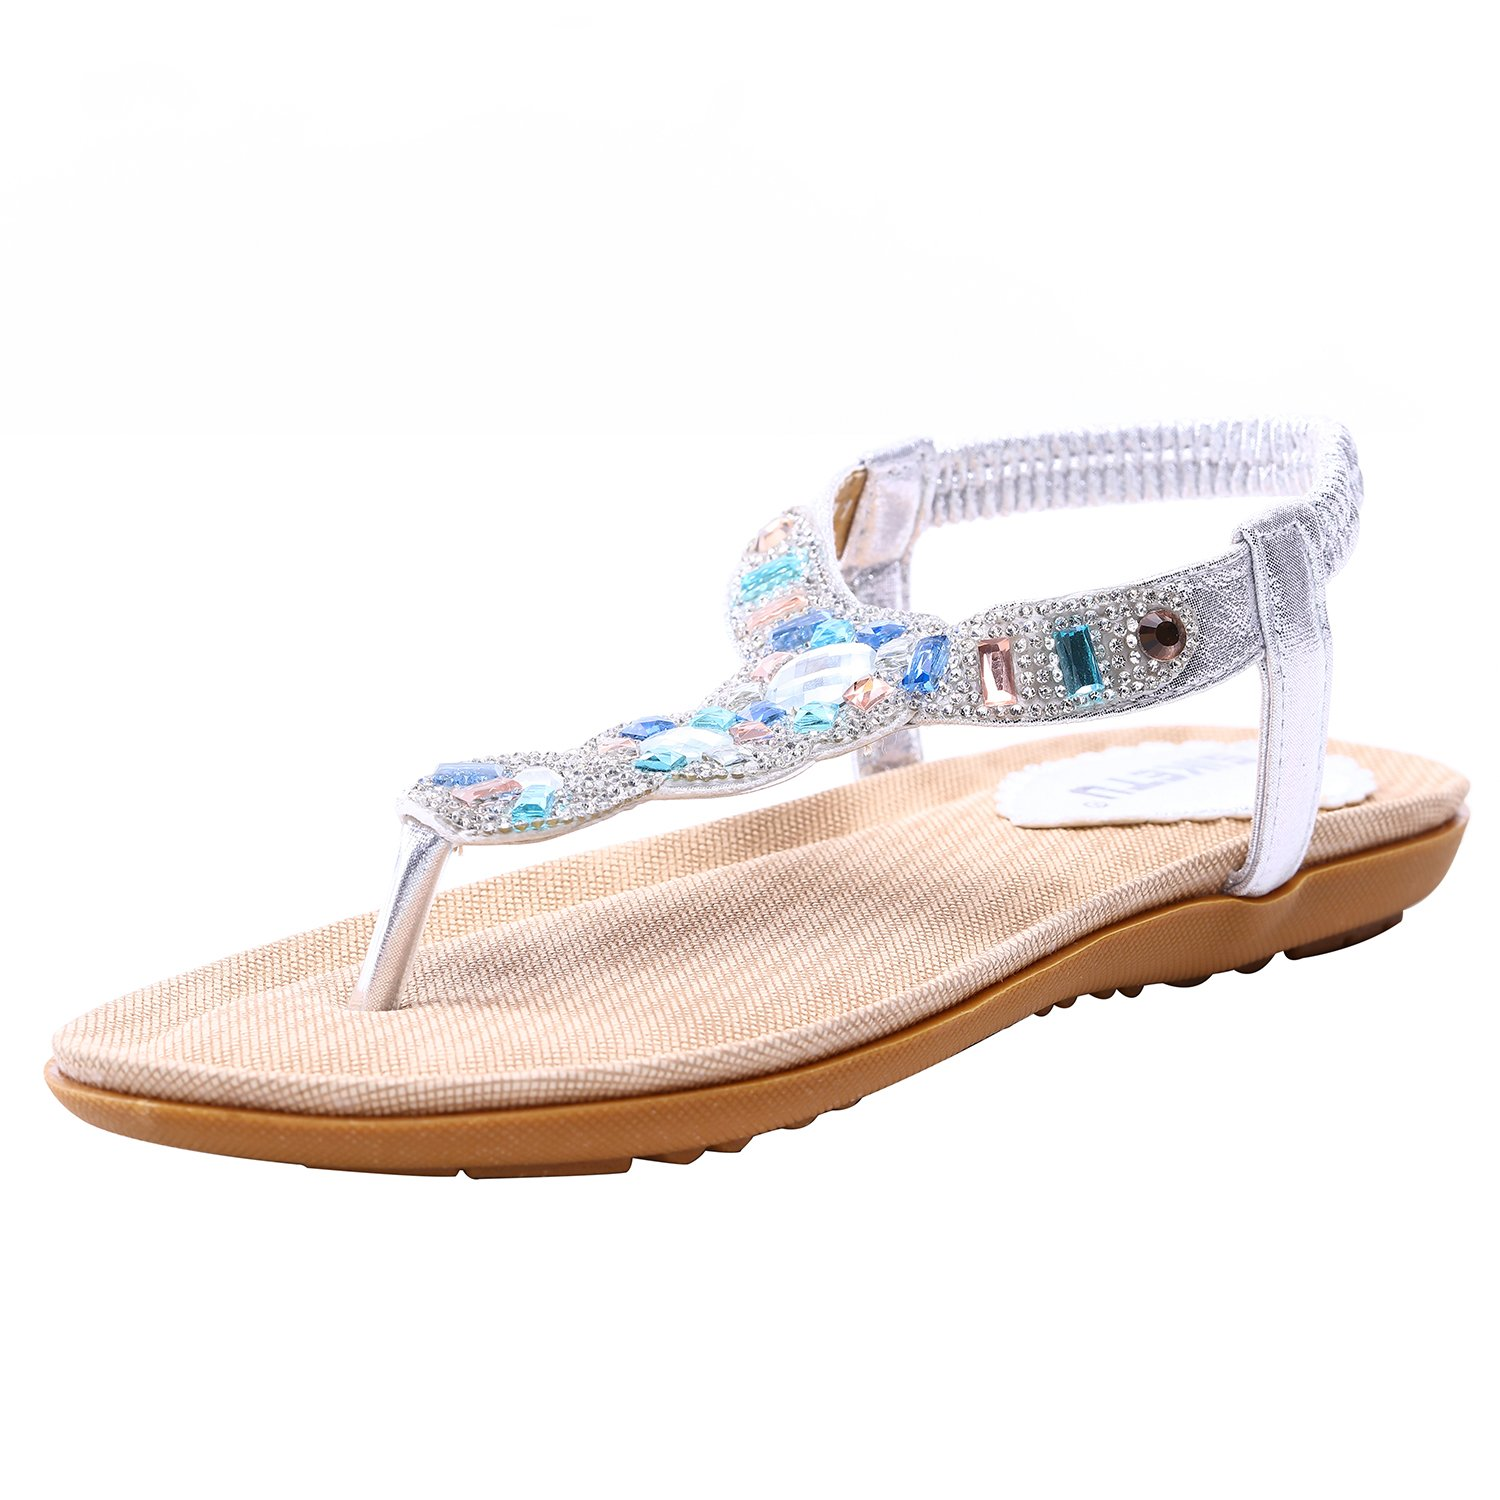 Womens Platform Wedge Sandals Bohemian Beaded Ethnic Style Shoes Thong Sandals (Shining Silver, 9 B(M) US/40EU)